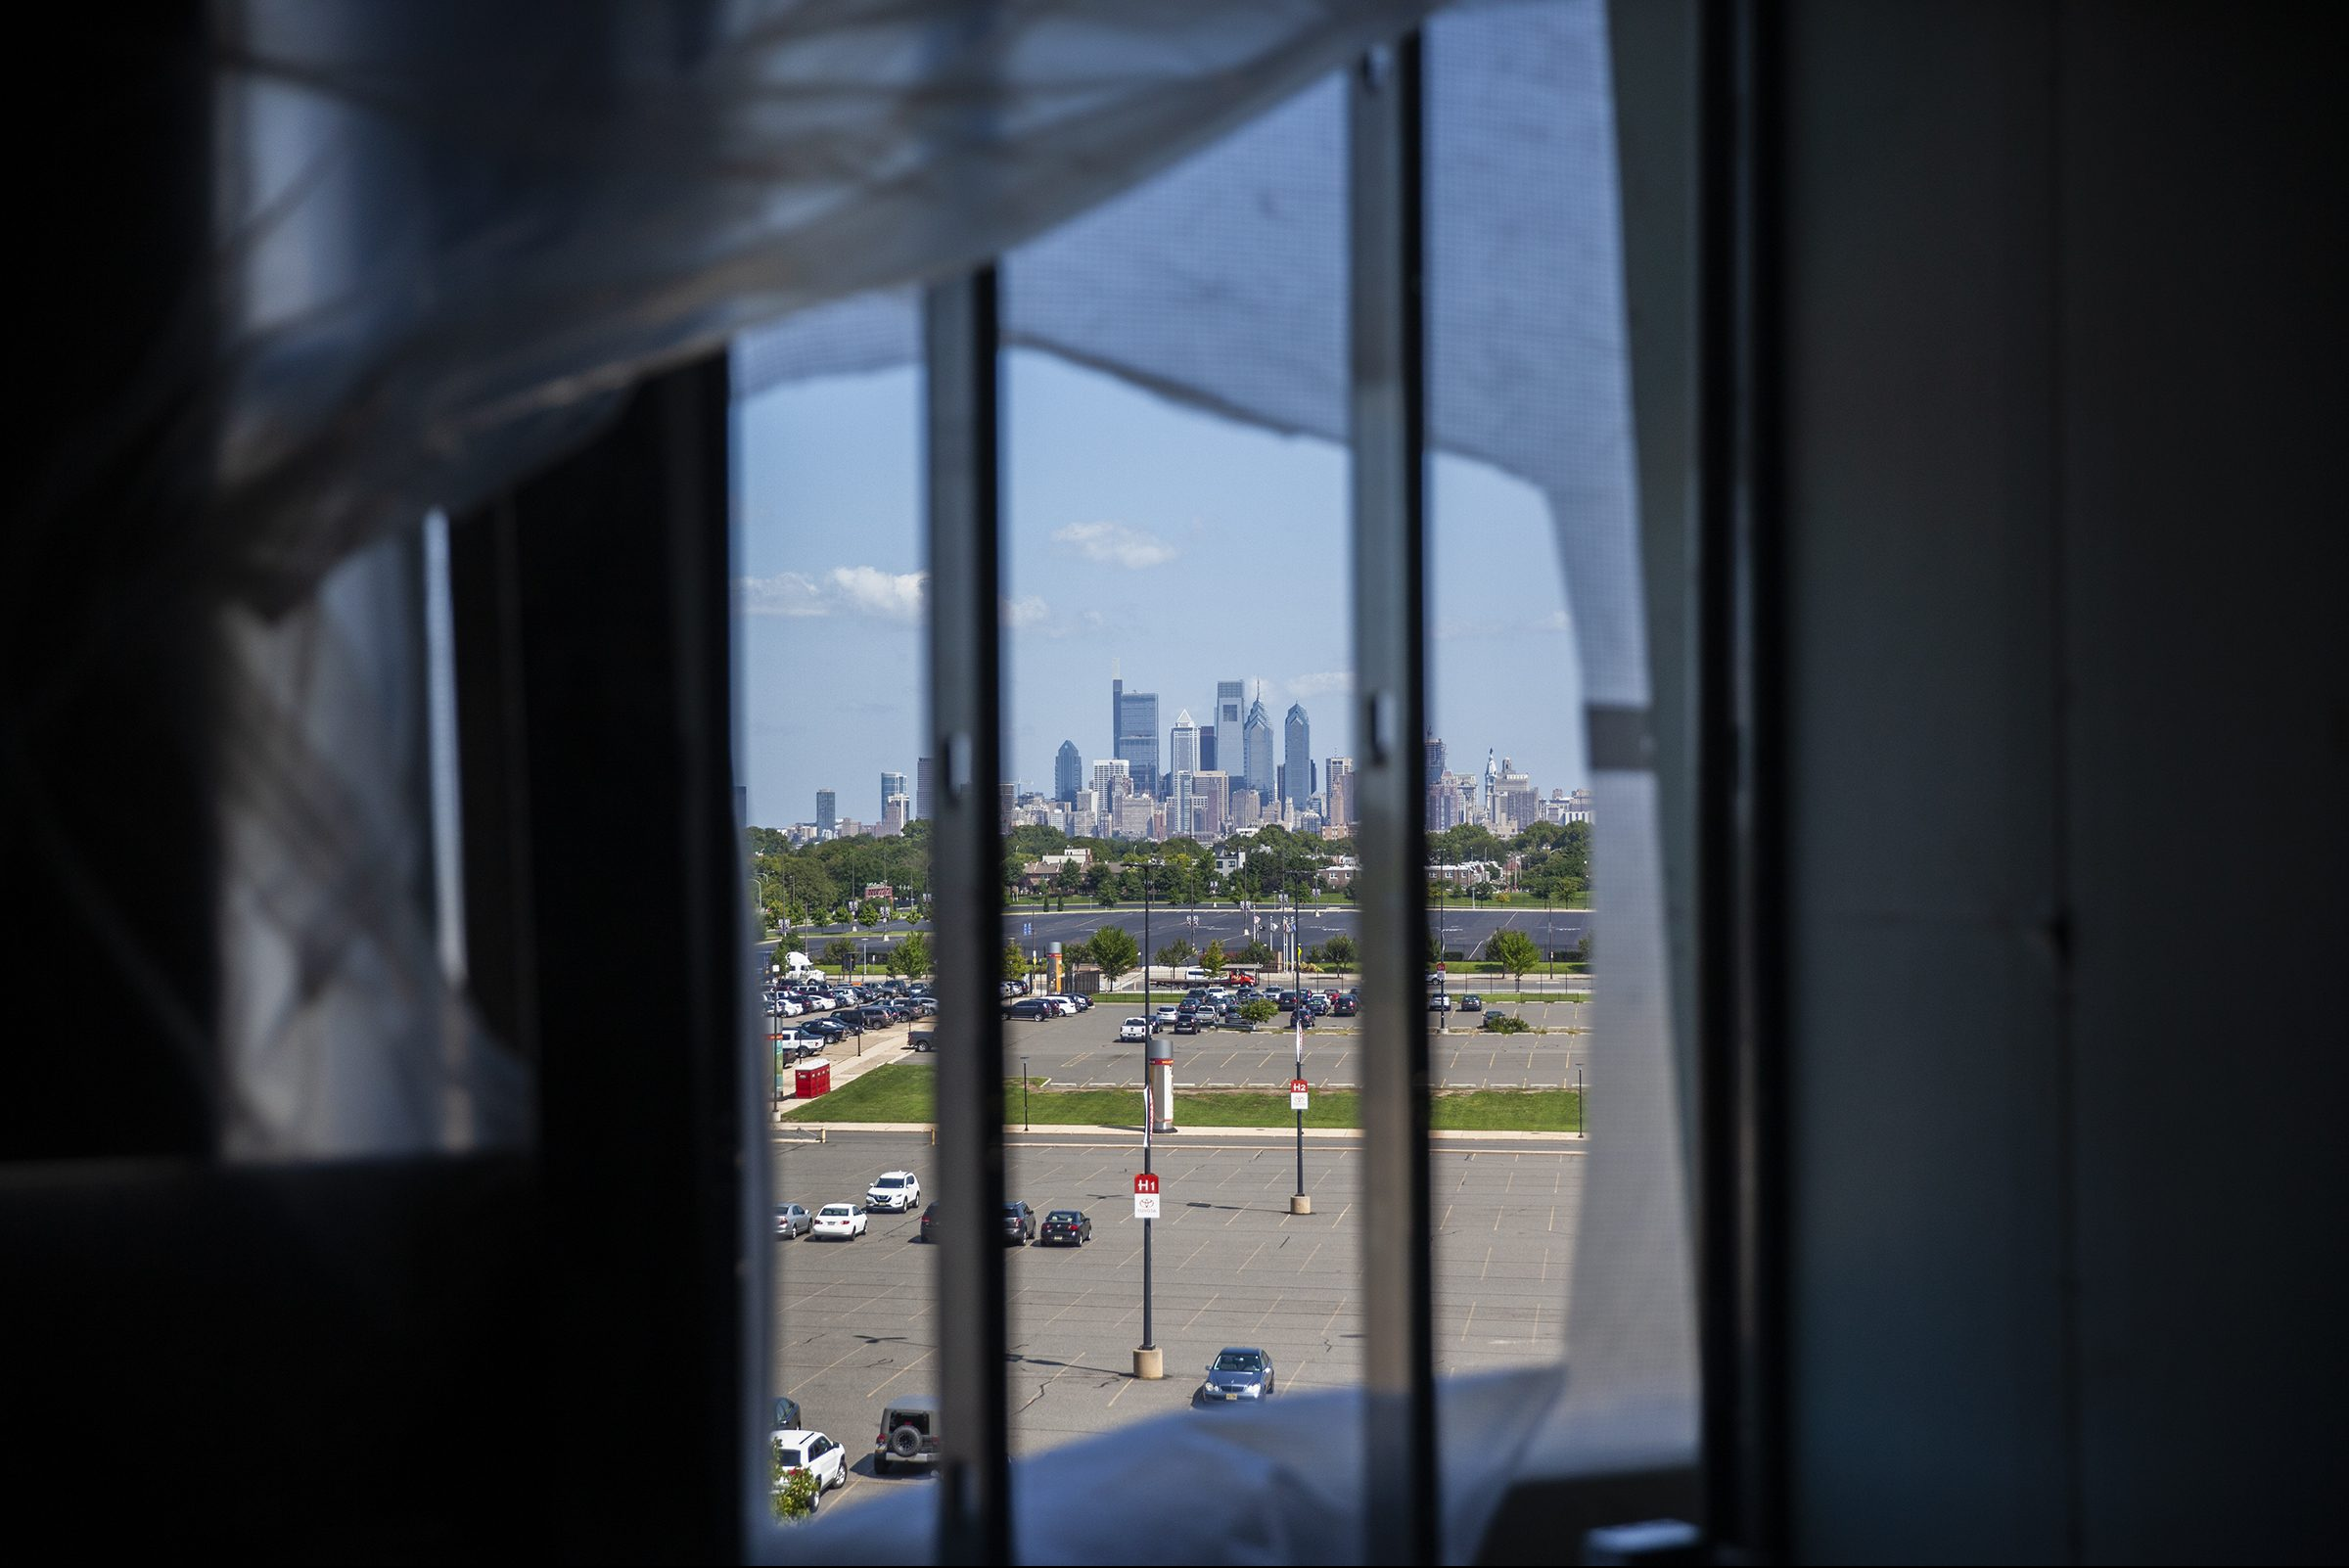 A view of the Philadelphia skyline is seen from inside the Wells Fargo Center on Thursday, Aug. 23, 2018. Renovations inside the arena will include glass windows for views of the skyline.